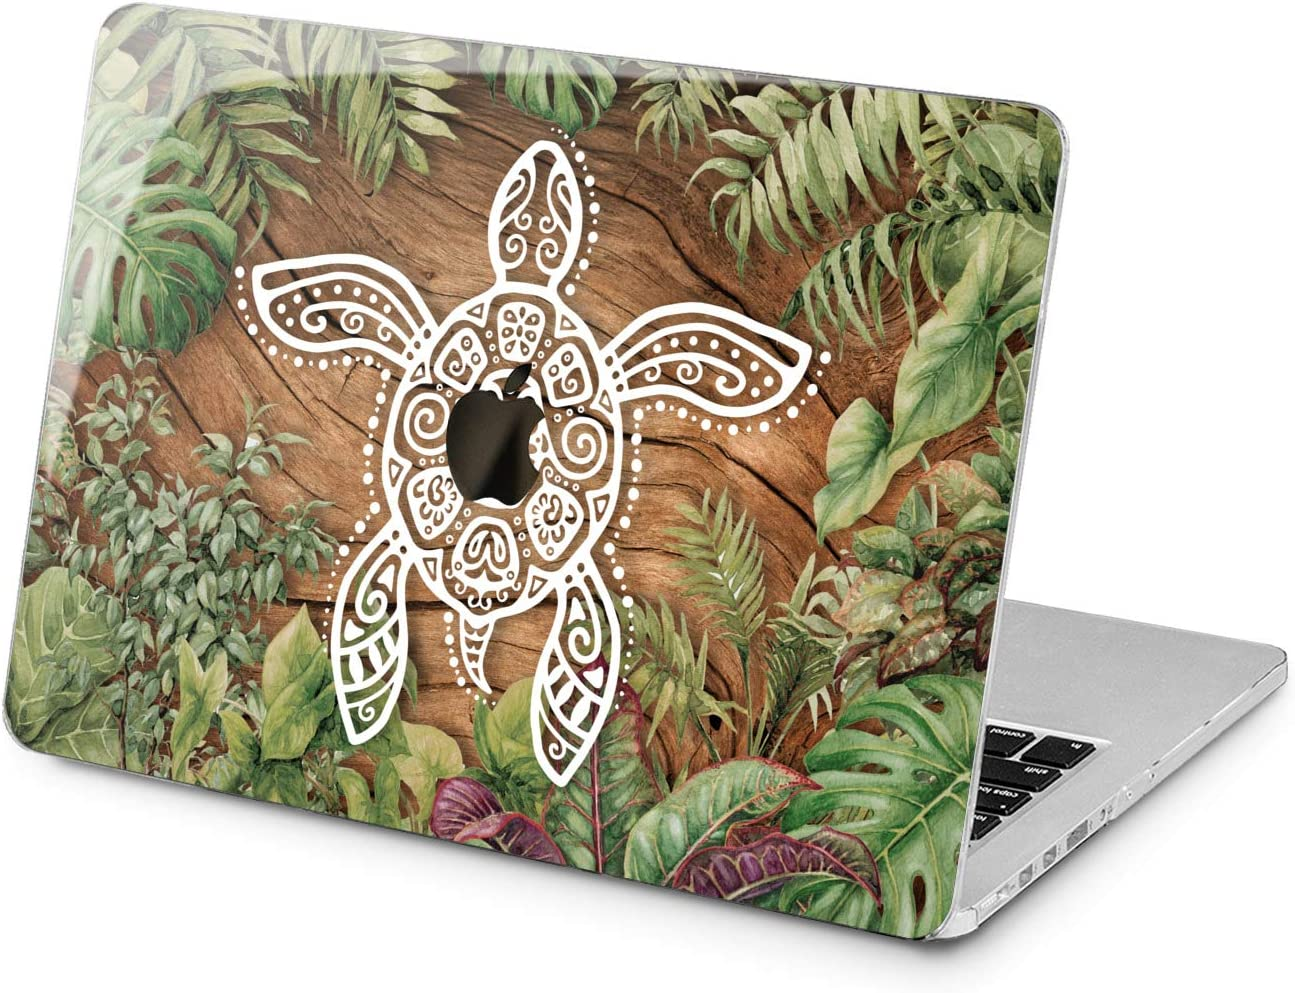 "Cavka Hard Shell Case for Apple MacBook Pro 13"" 2019 15"" 2018 Air 13"" 2020 Retina 2015 Mac 11"" Mac 12"" Design Plastic Palm Laptop Leaves Turtle Sea Boho Protective Wood Trendy Cover Print Tropical"